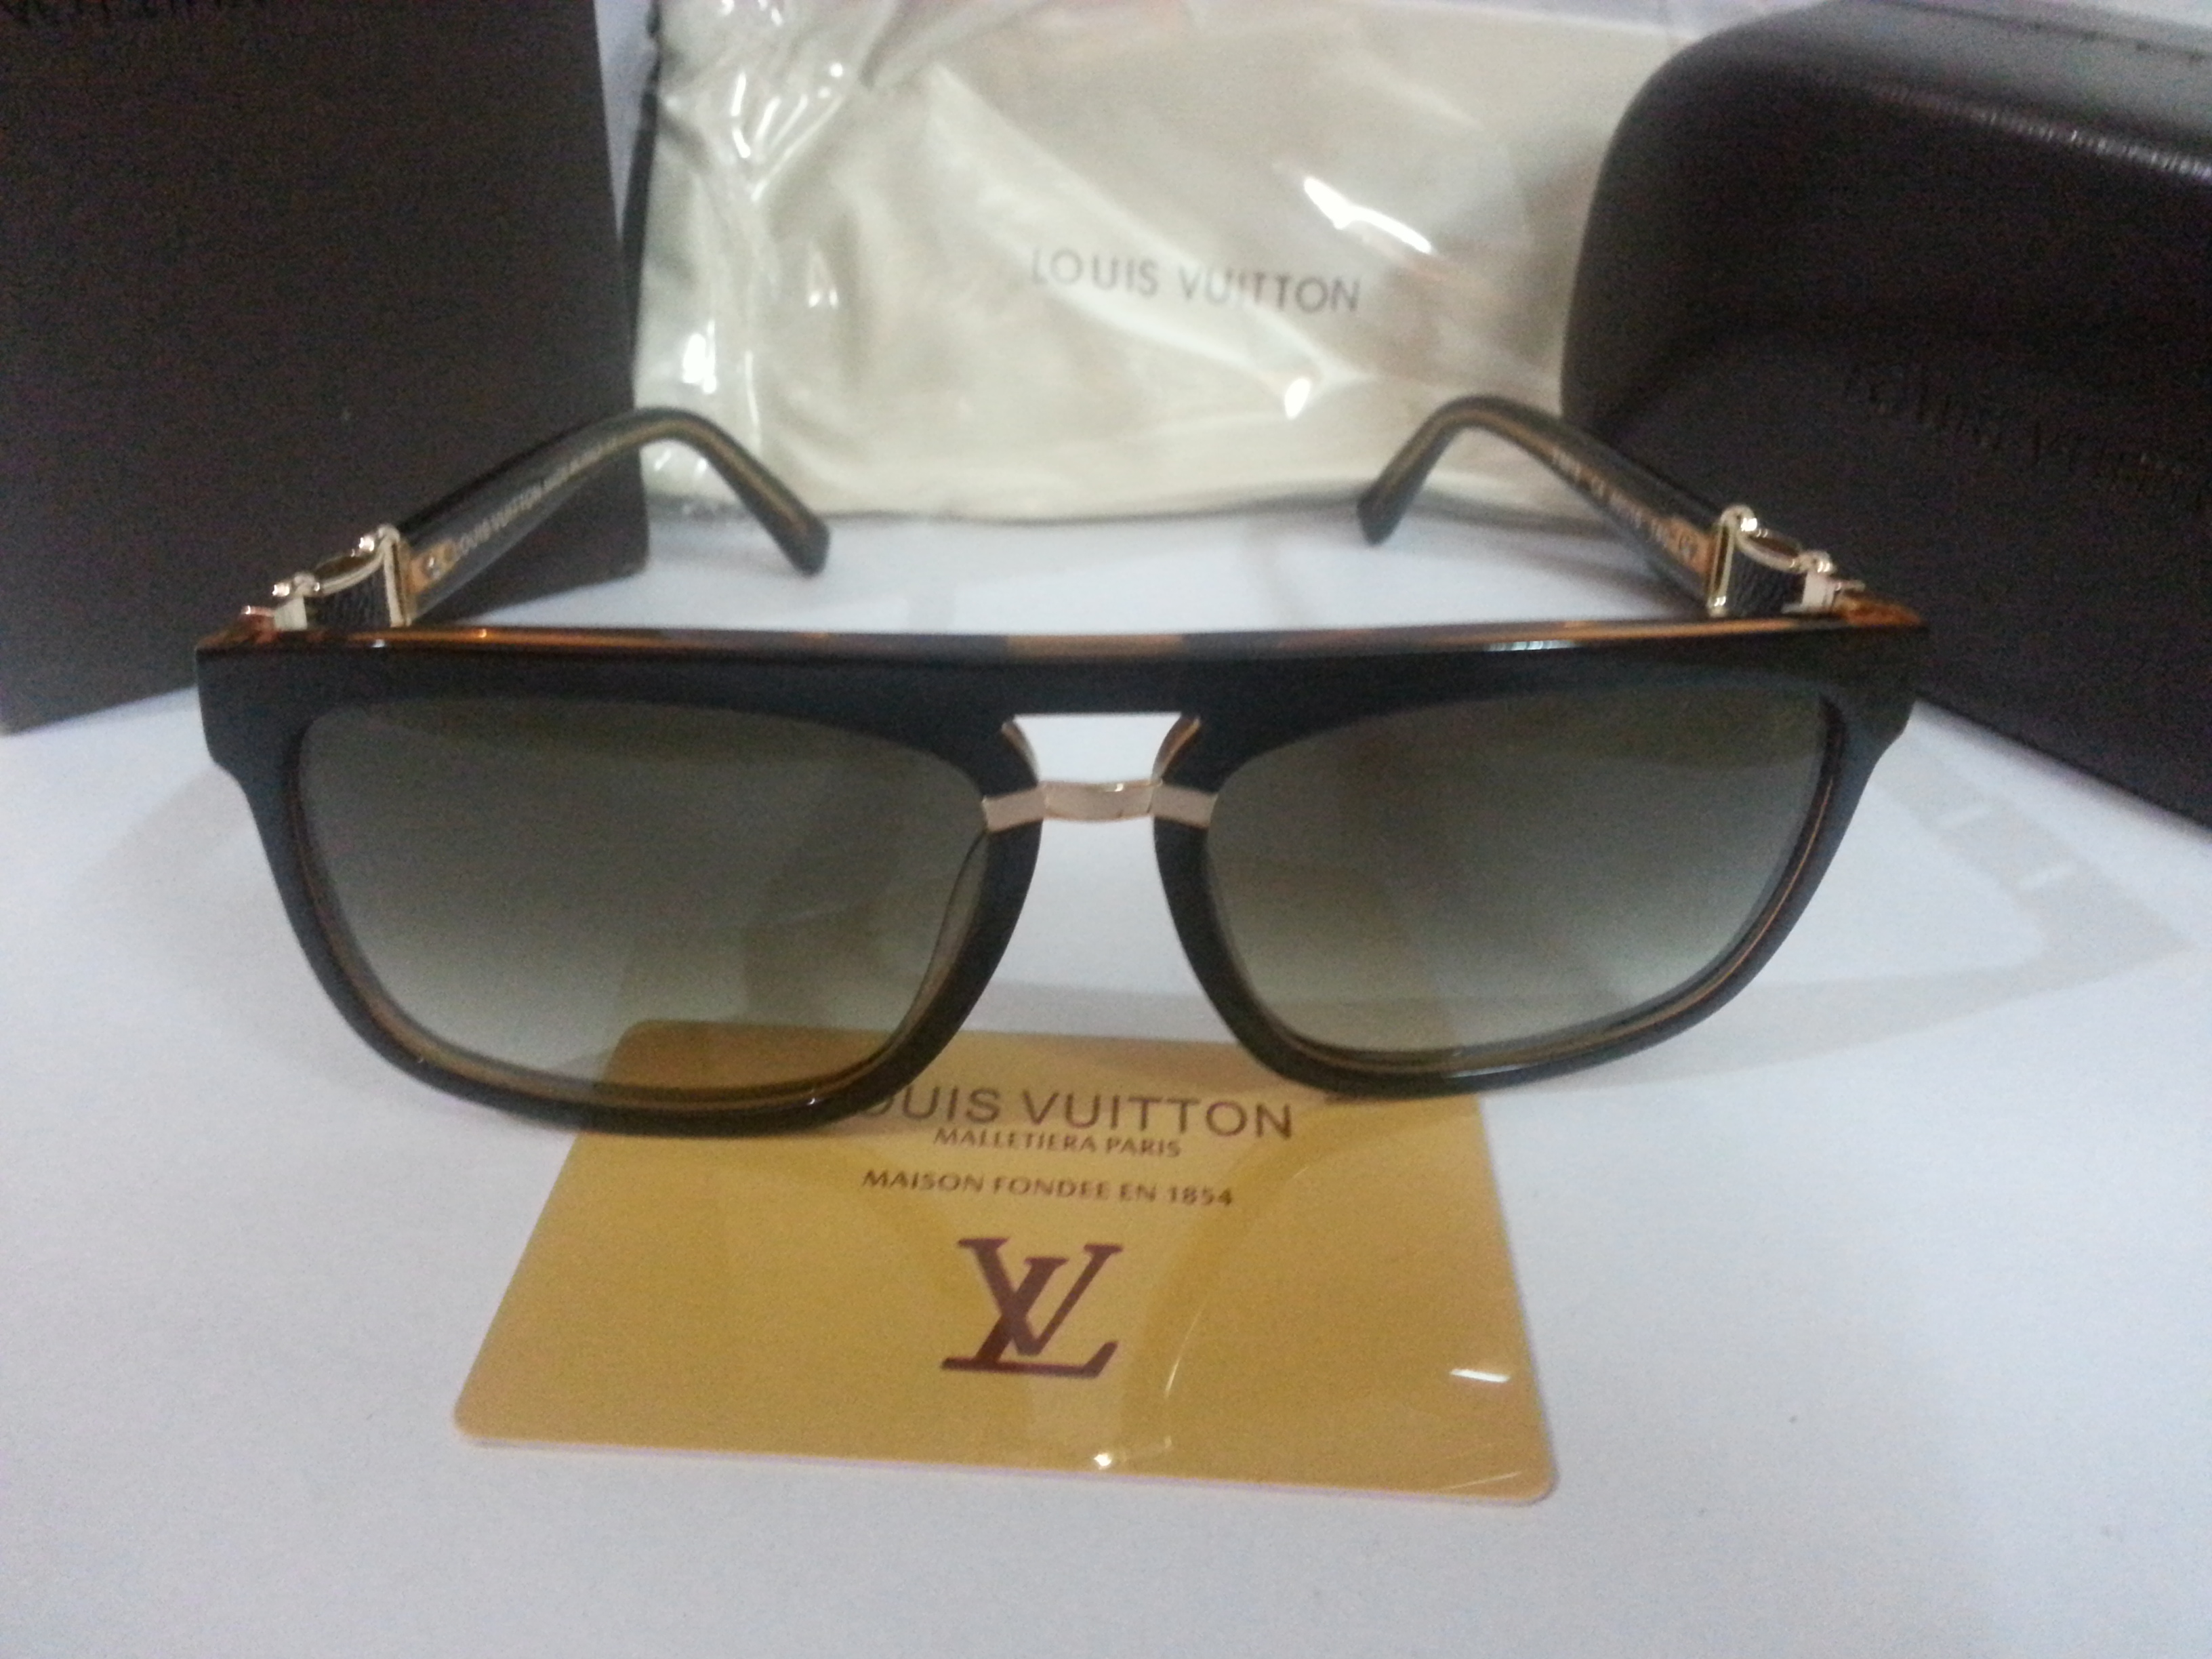 5a9cc76f67 LUXURY Louis Vuitton Sunglasses Imported Free Gift Best Deals With ...